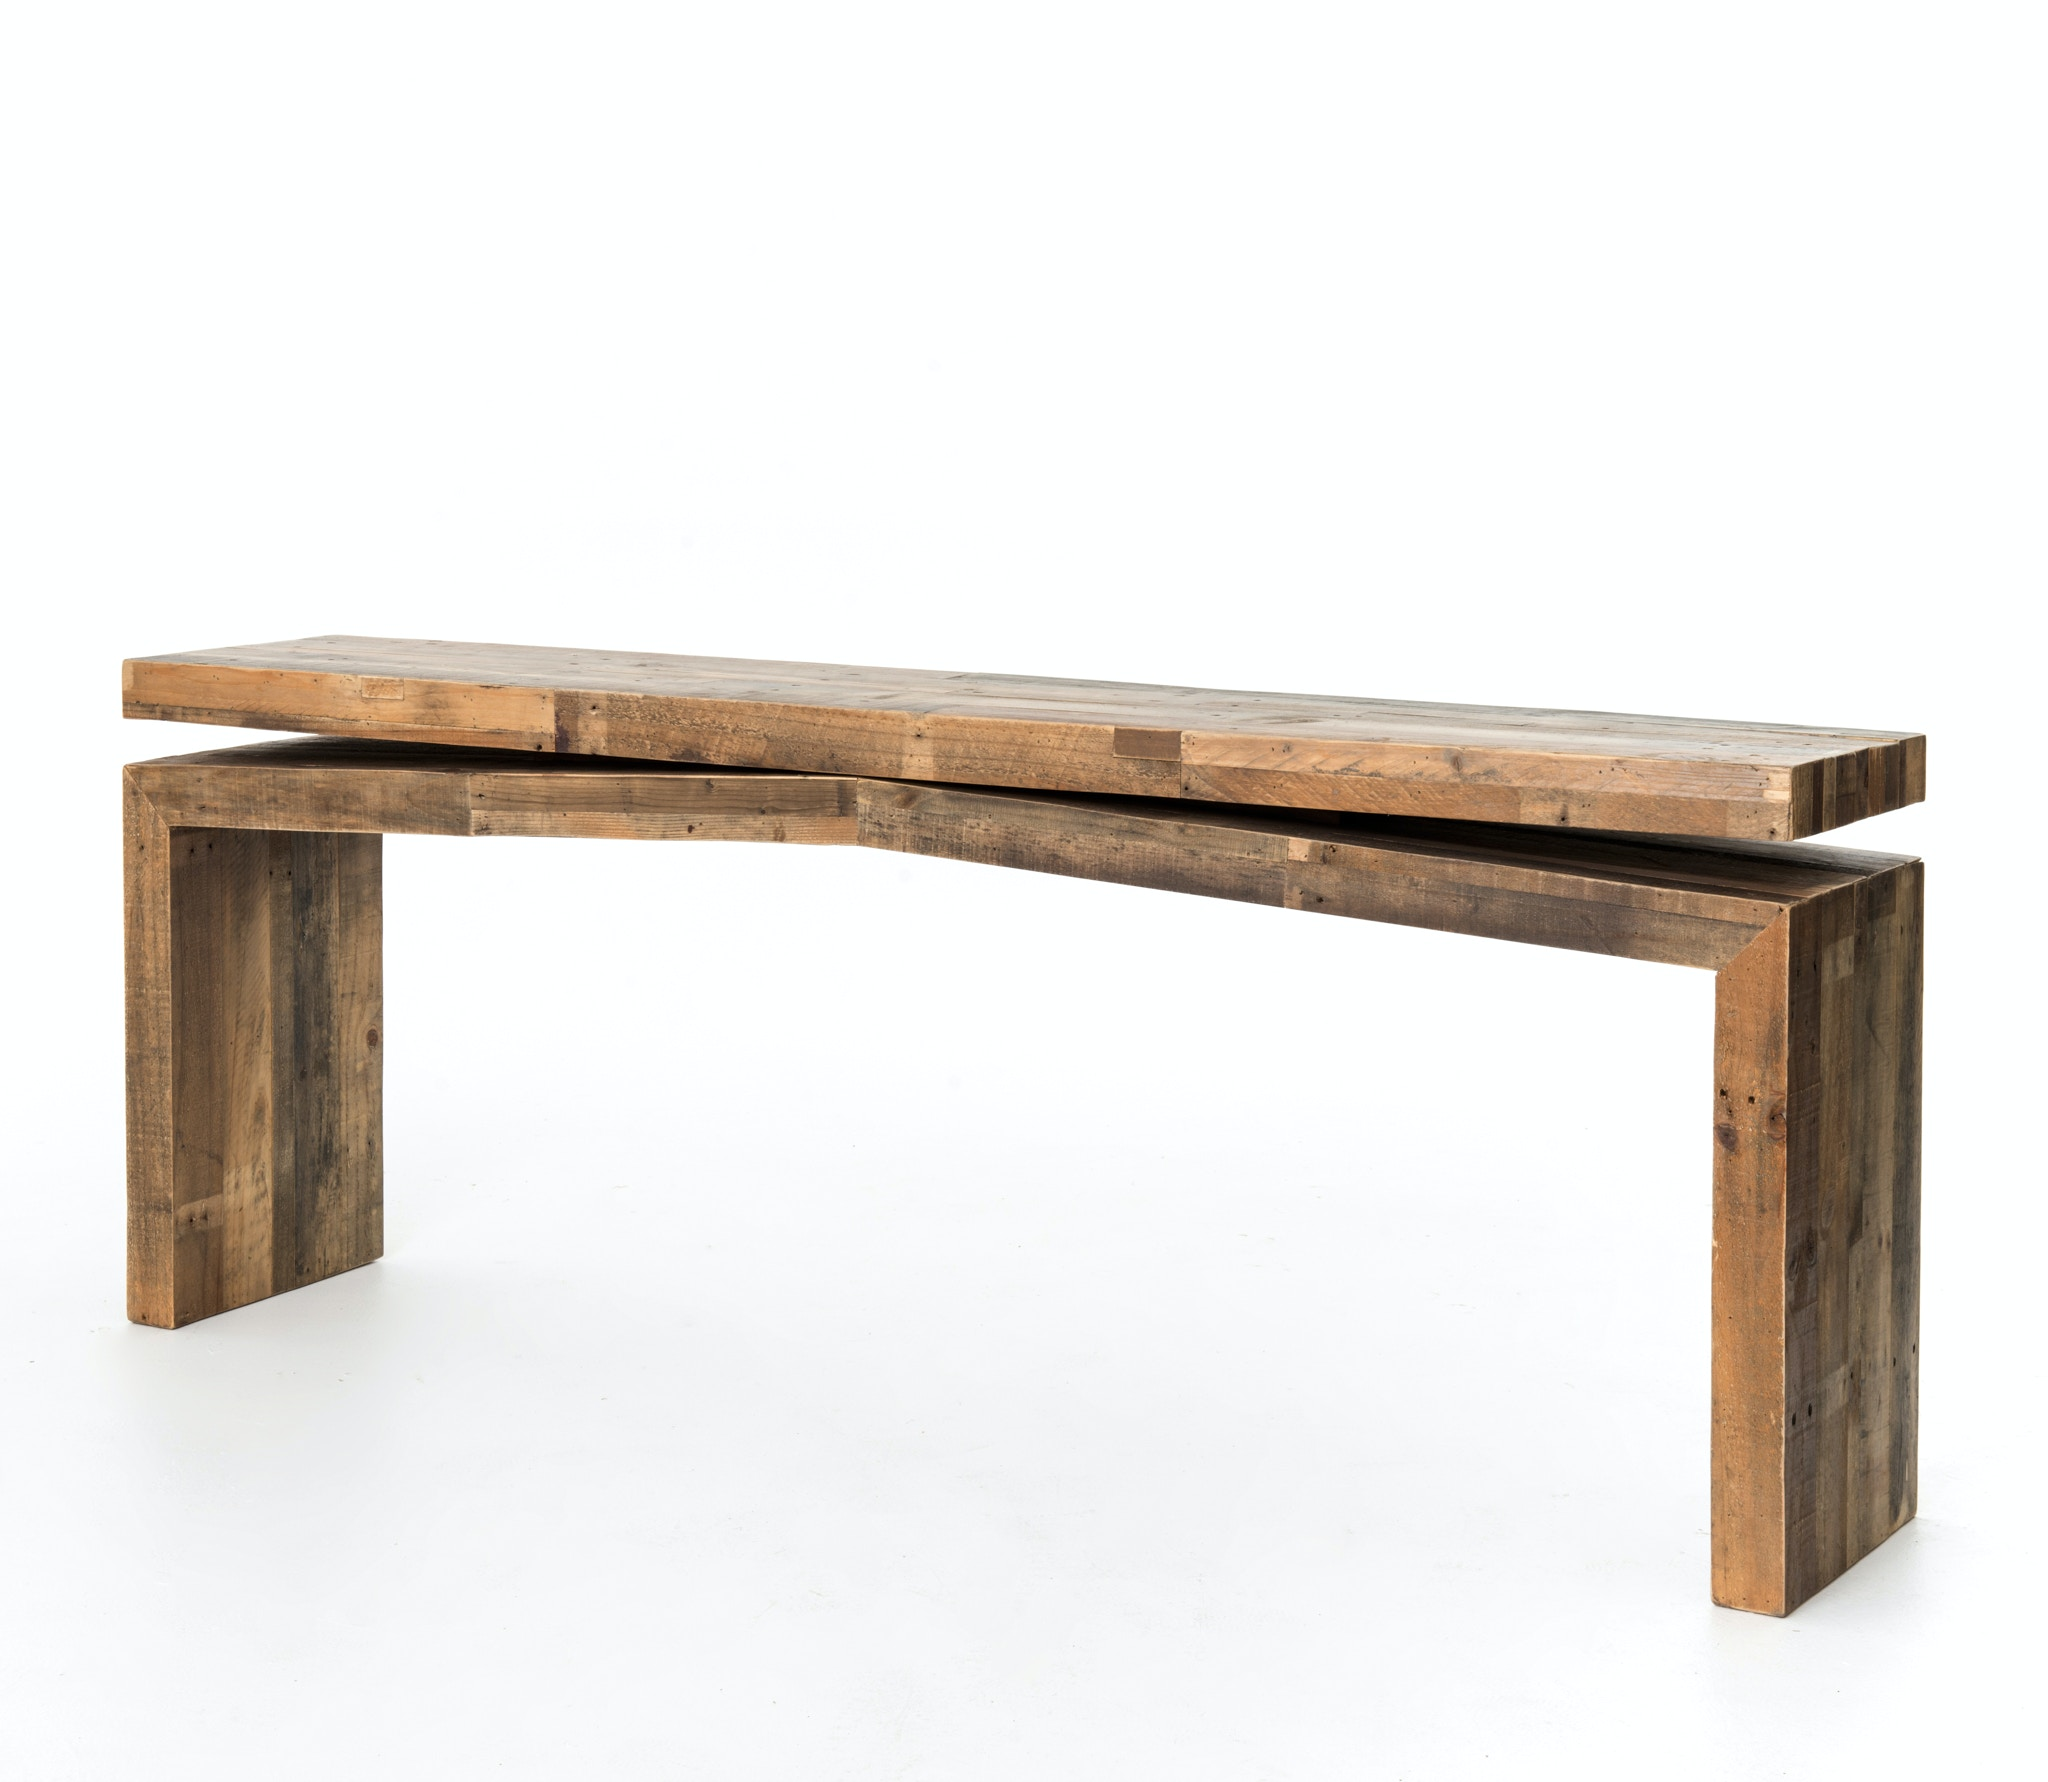 Four Hands Coffee Table Images. Four Hands Showplace 4101 ...